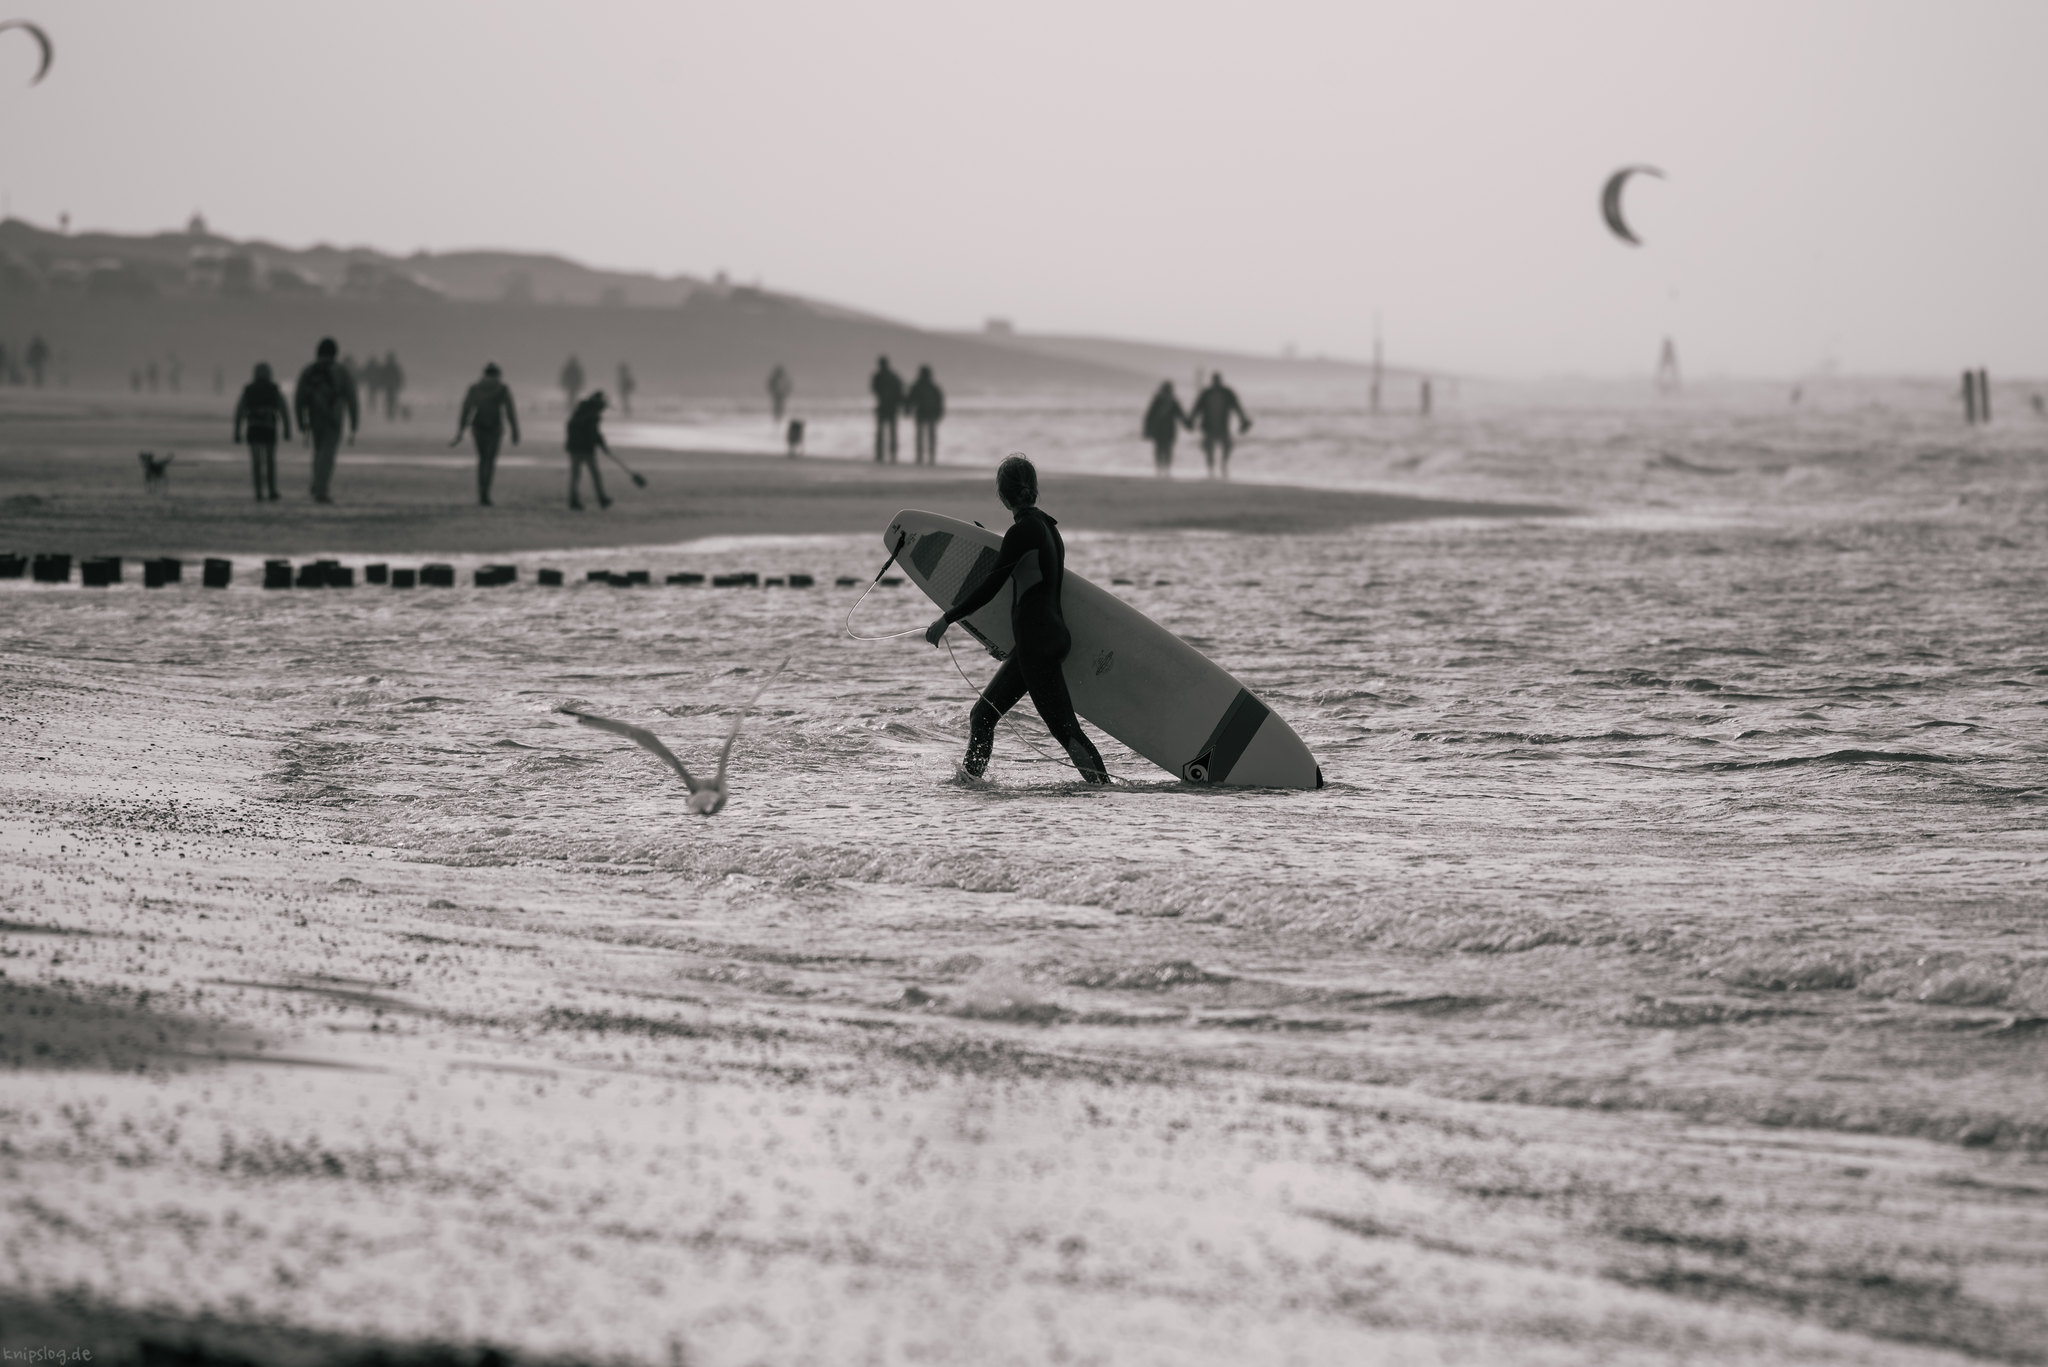 Using the time for surfing